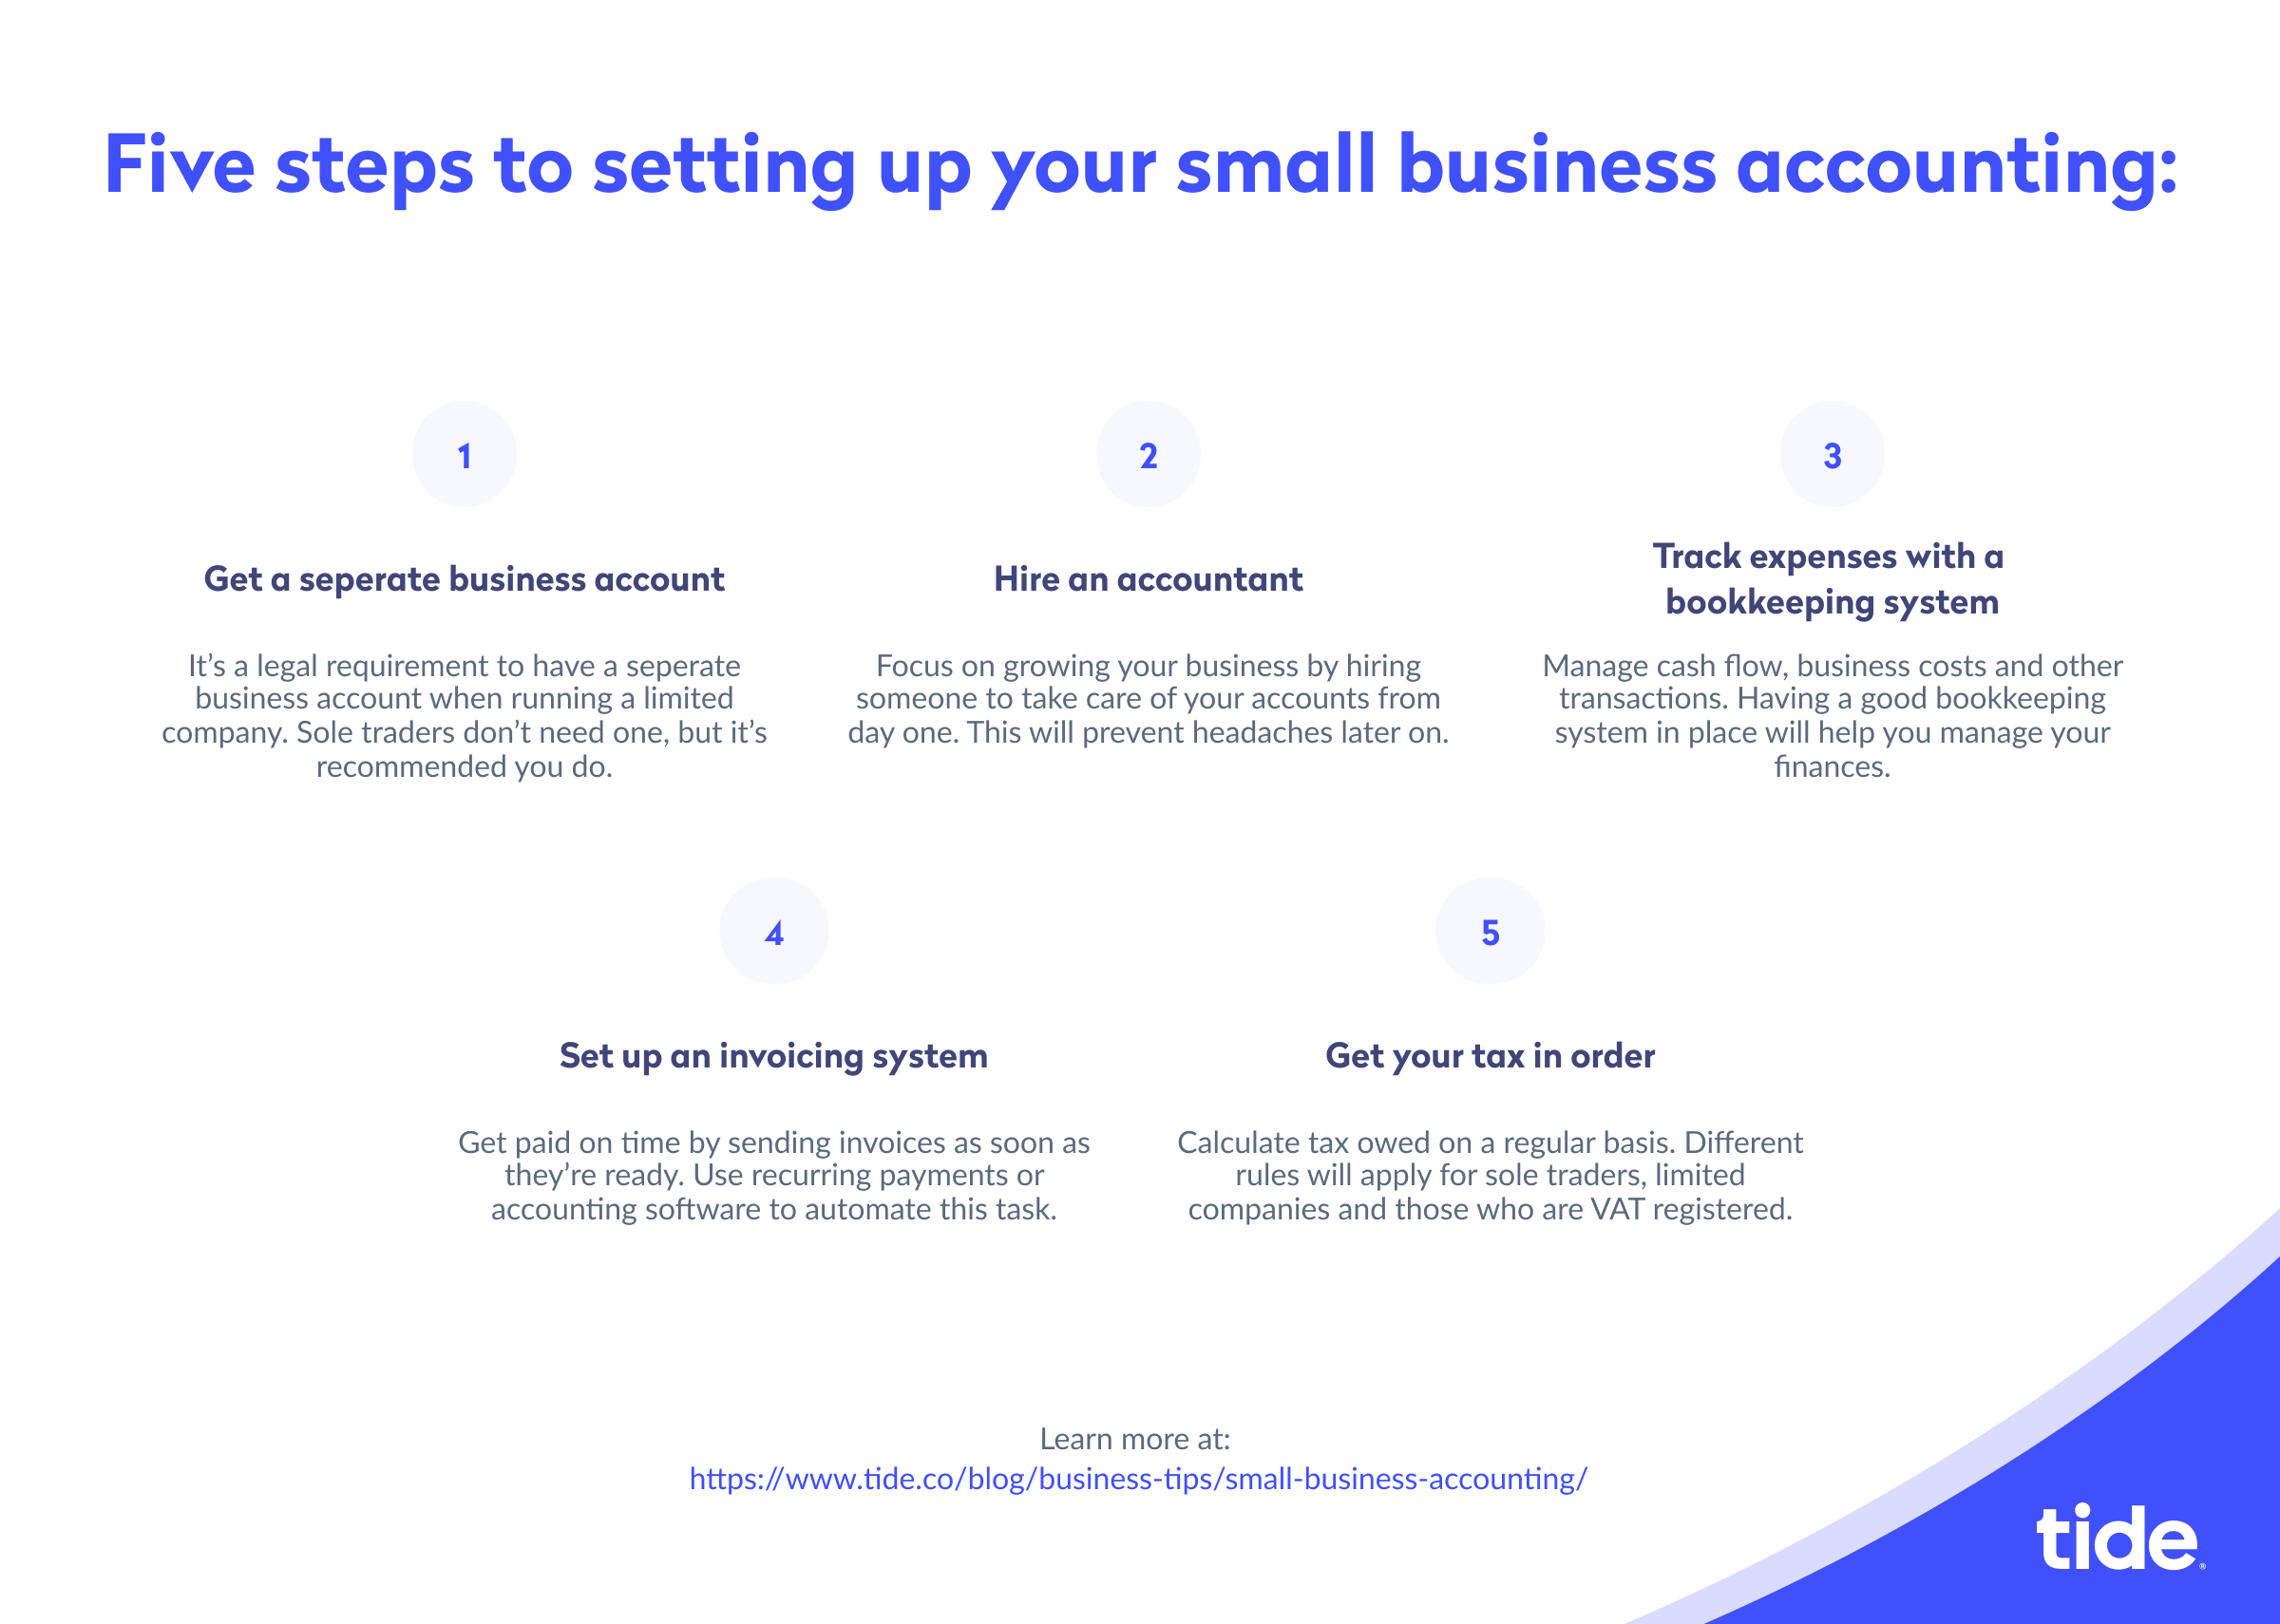 Business Accounting Small Business Tips Tide Business